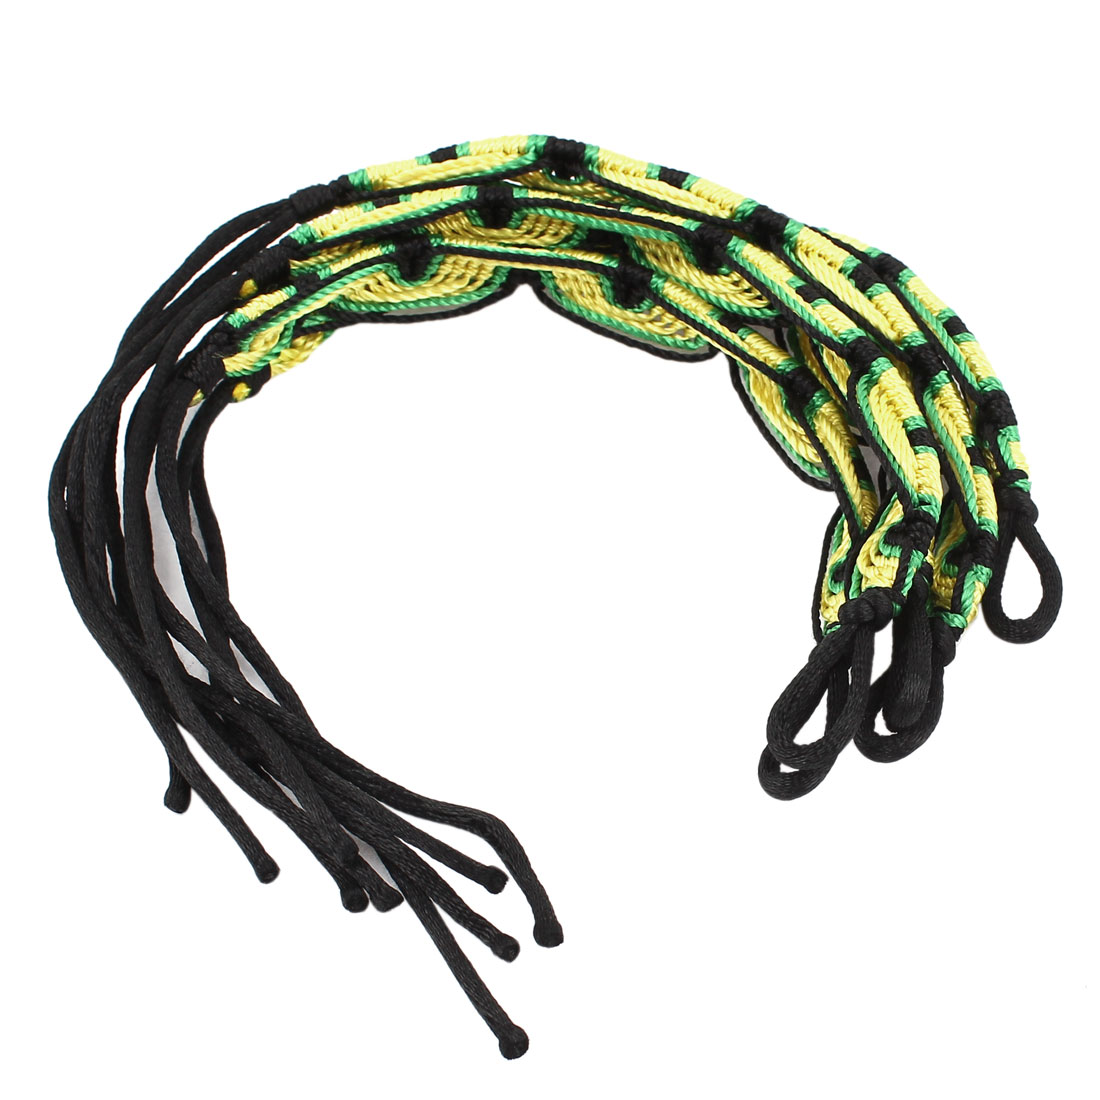 5 Pcs Nylon Cord Handwork Braided Wrist Decor Bracelet Black Yellow for Lady